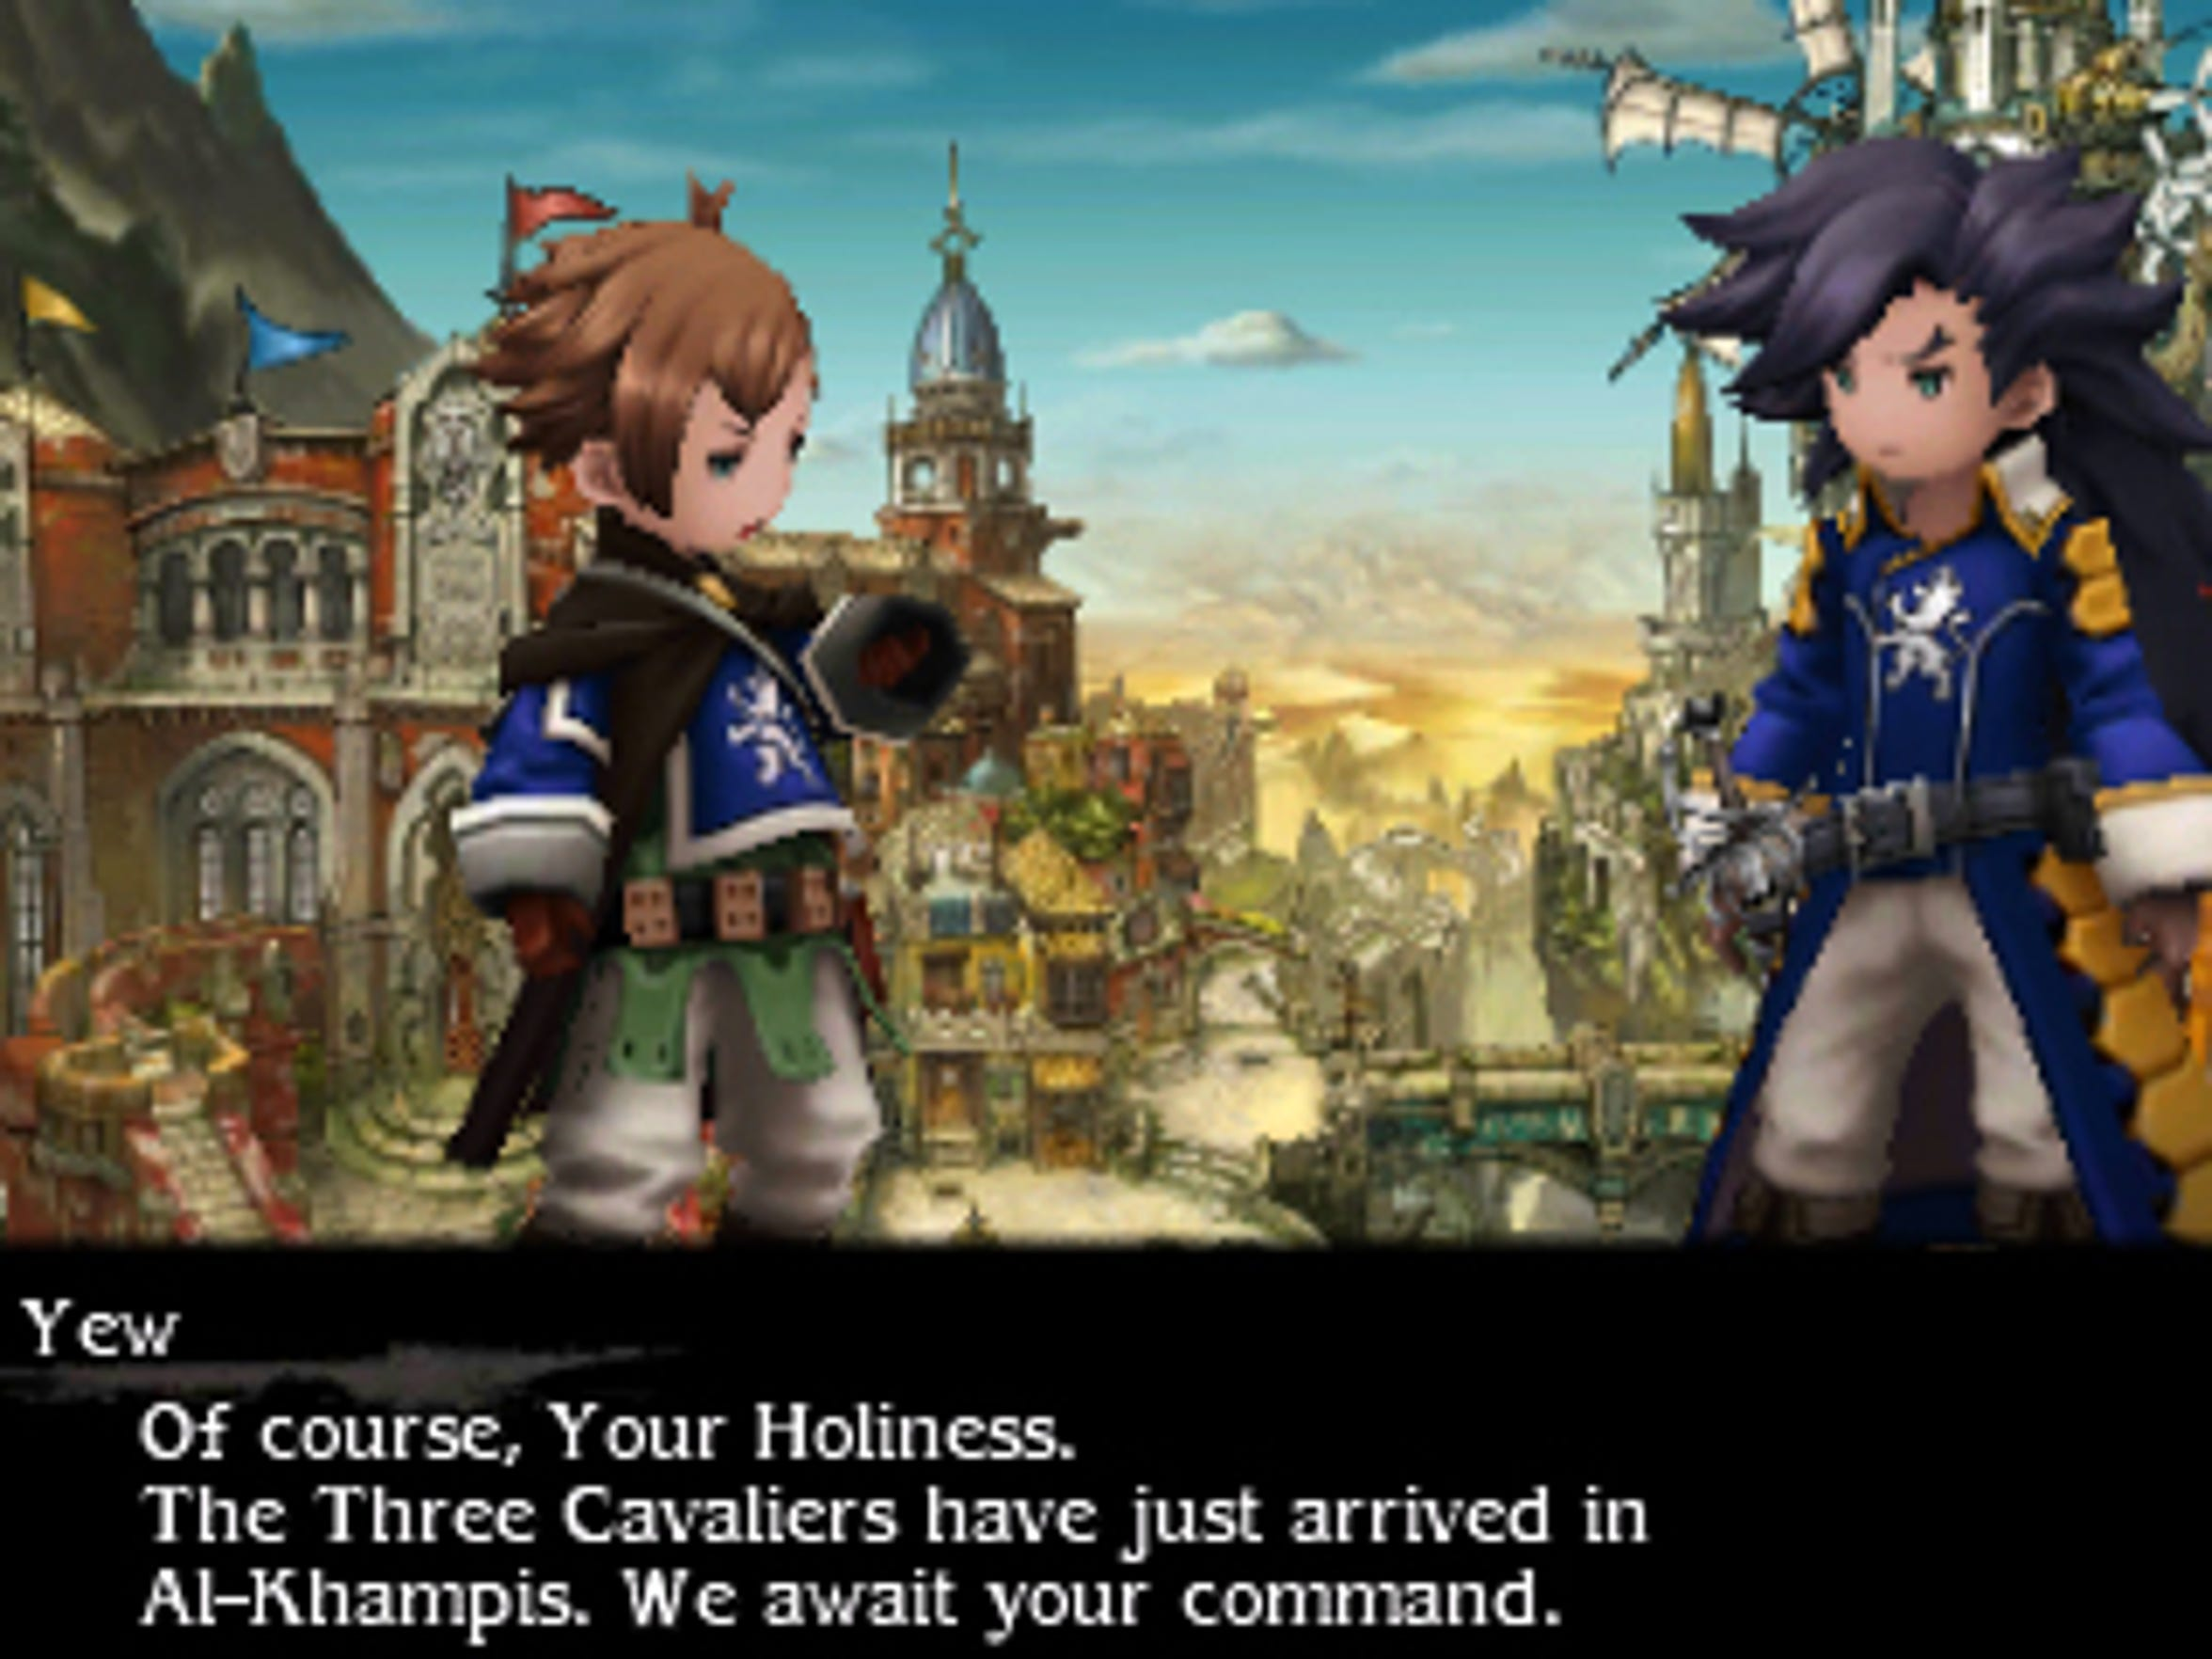 Yew of the Three Cavaliers is a new protagonist in